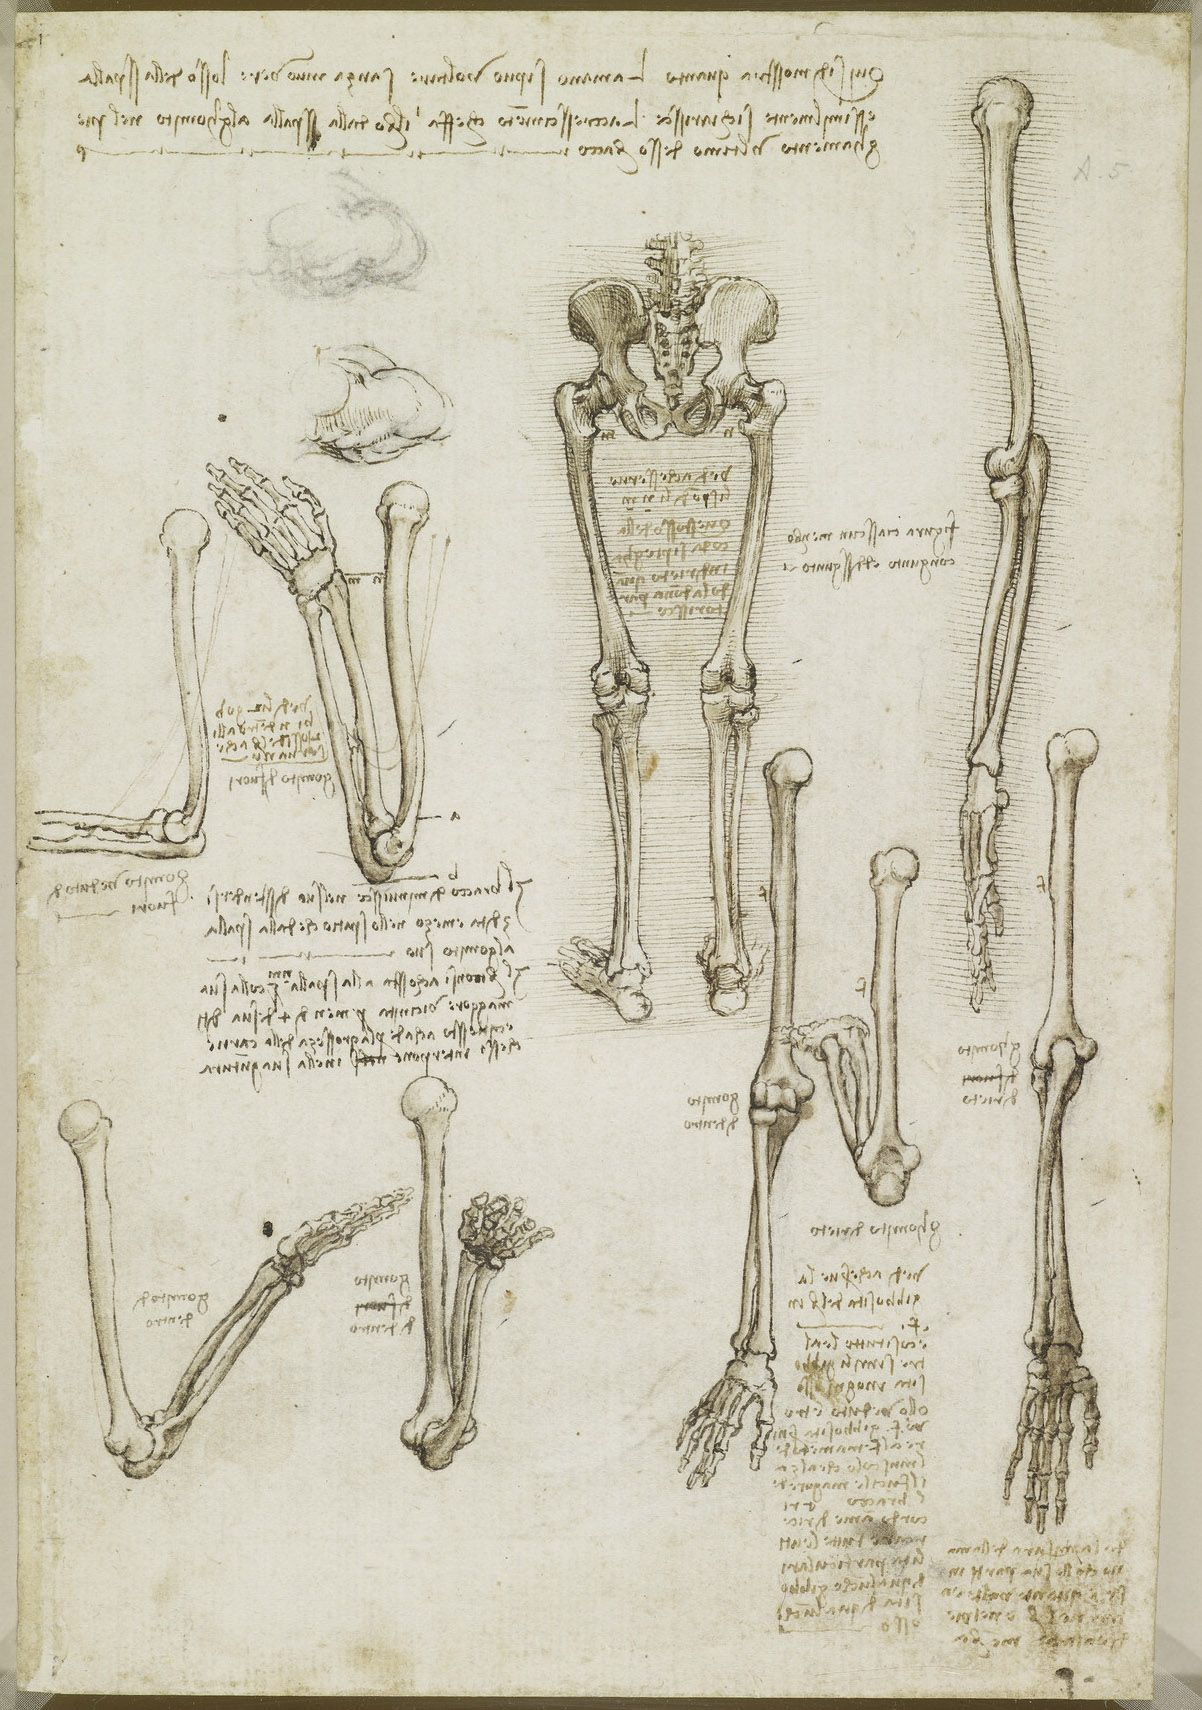 Leonardo Da Vinci Vinci 1452 Amboise 1519 Recto The Bones Of